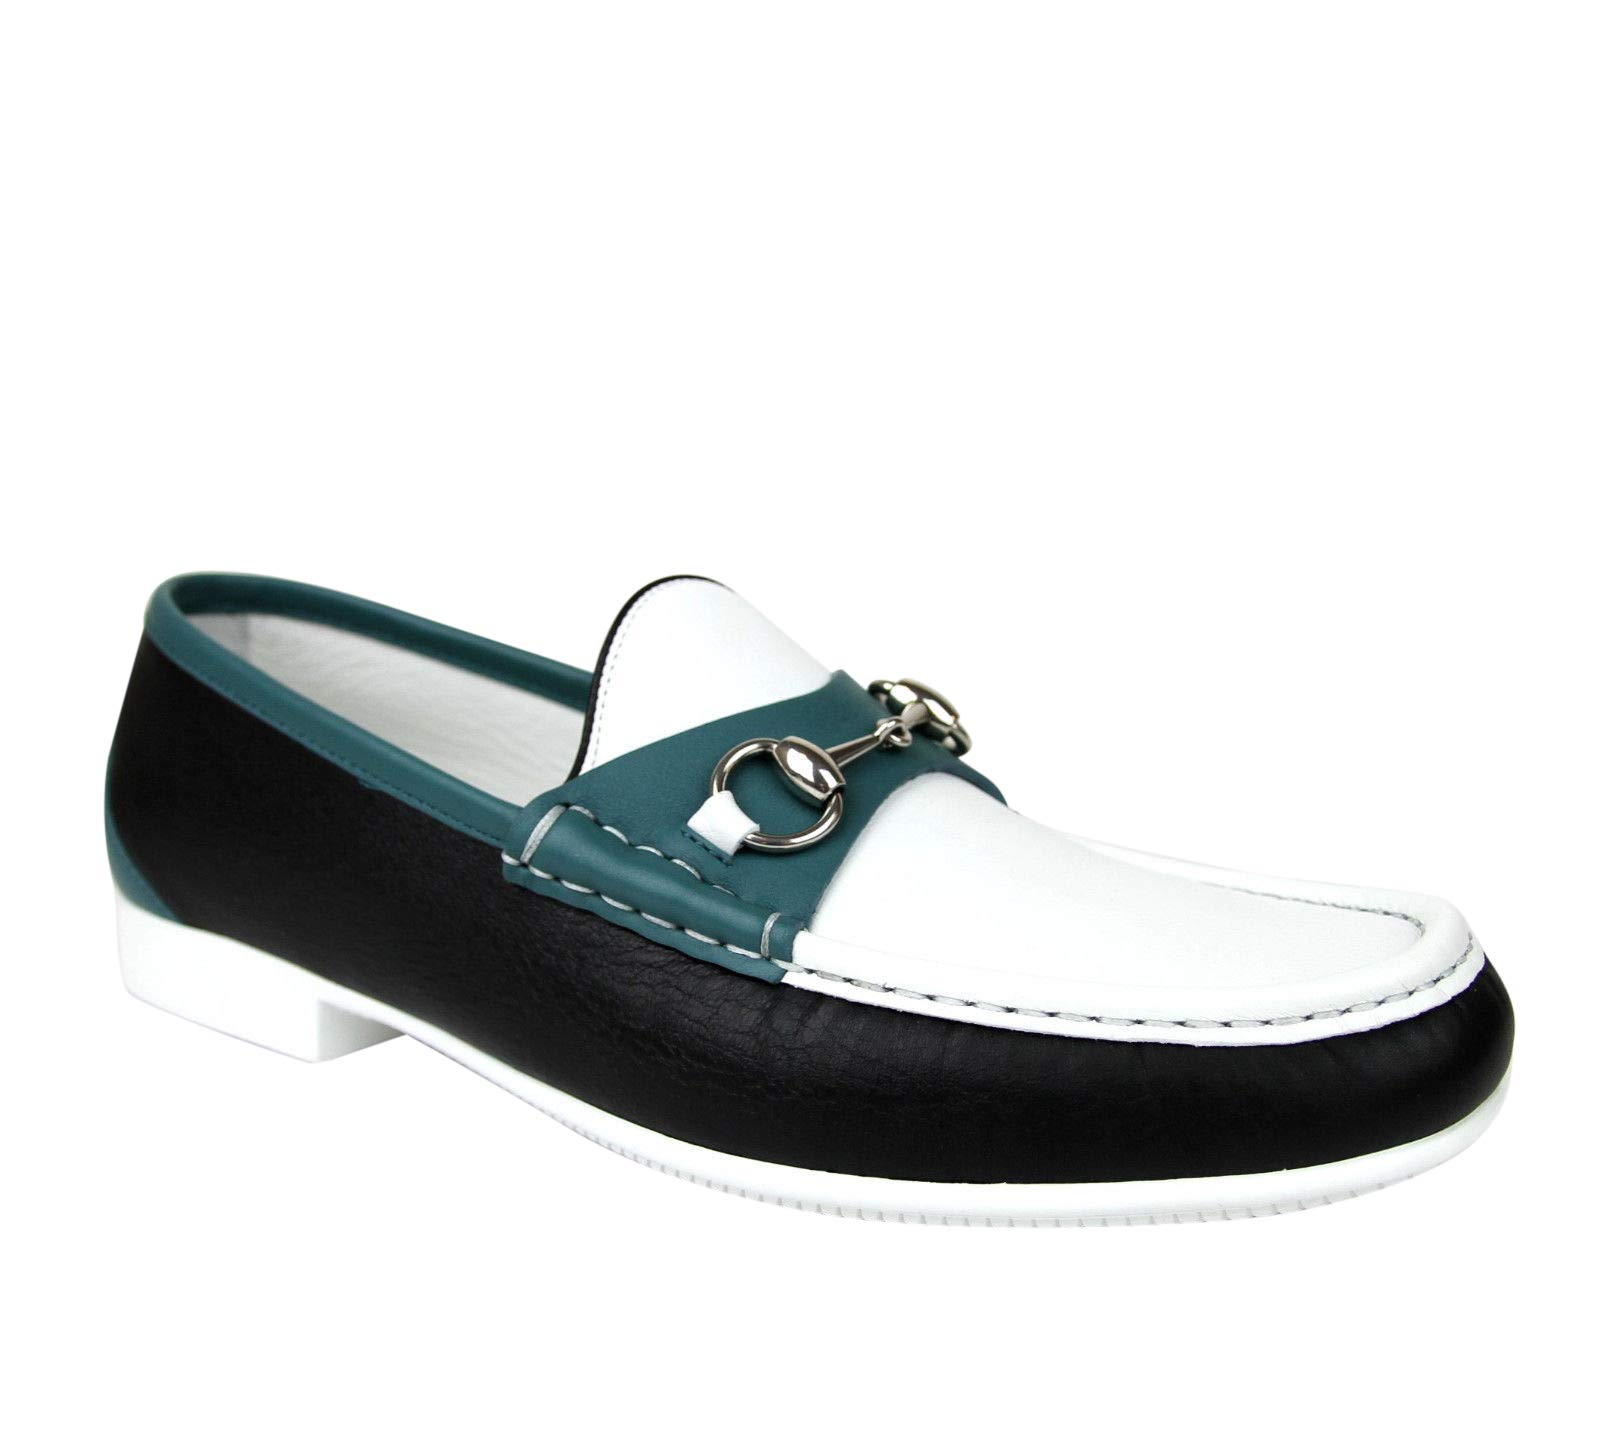 ee634357031 Gucci Horsebit White Black Blue Leather Loafer Moccasin 337060 AYO70 1067  (9.5 G